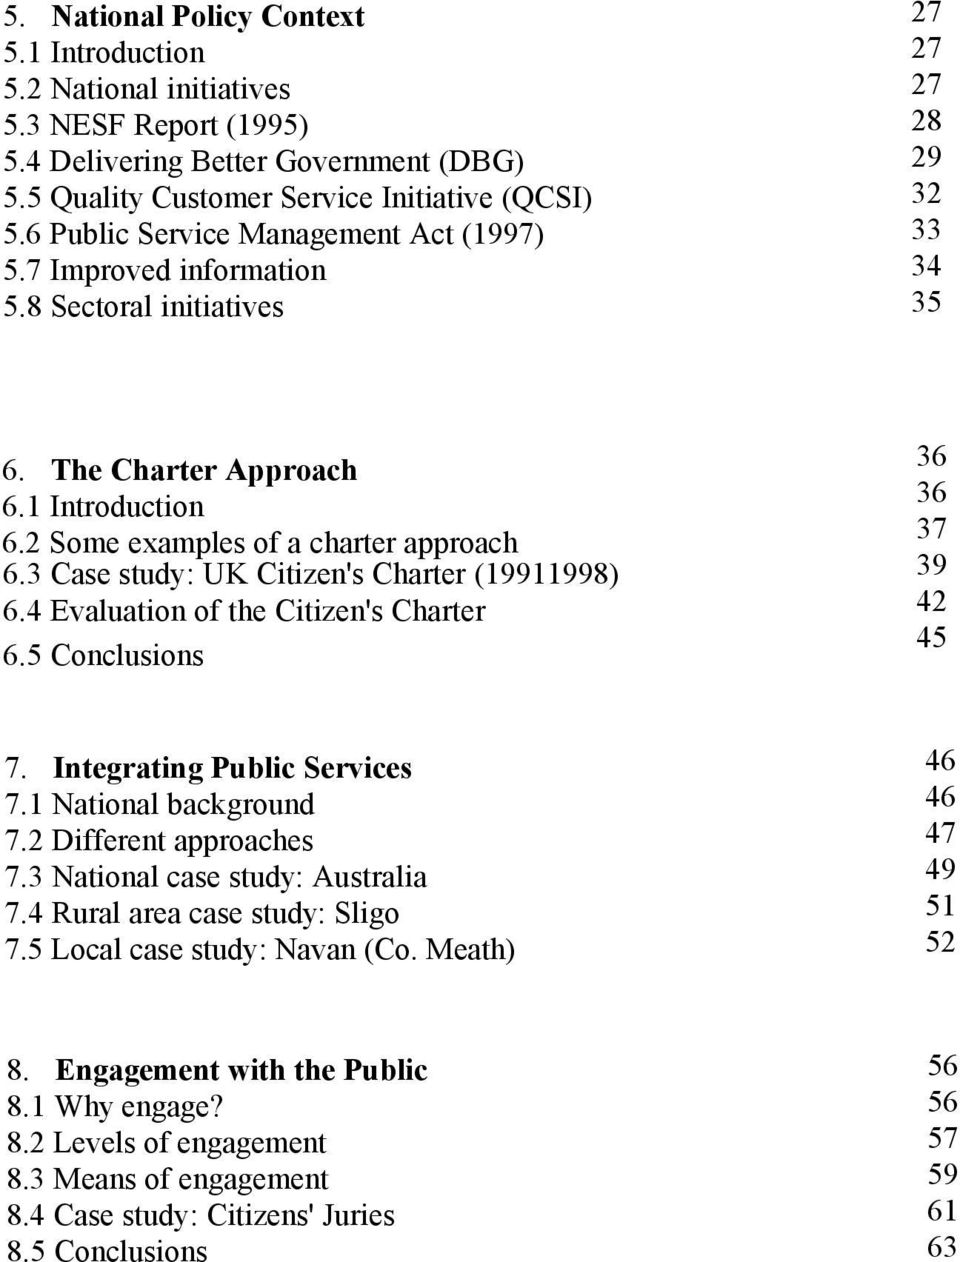 3 Case study: UK Citizen's Charter (19911998) 6.4 Evaluation of the Citizen's Charter 6.5 Conclusions 36 36 37 39 42 45 7. Integrating Public Services 7.1 National background 7.